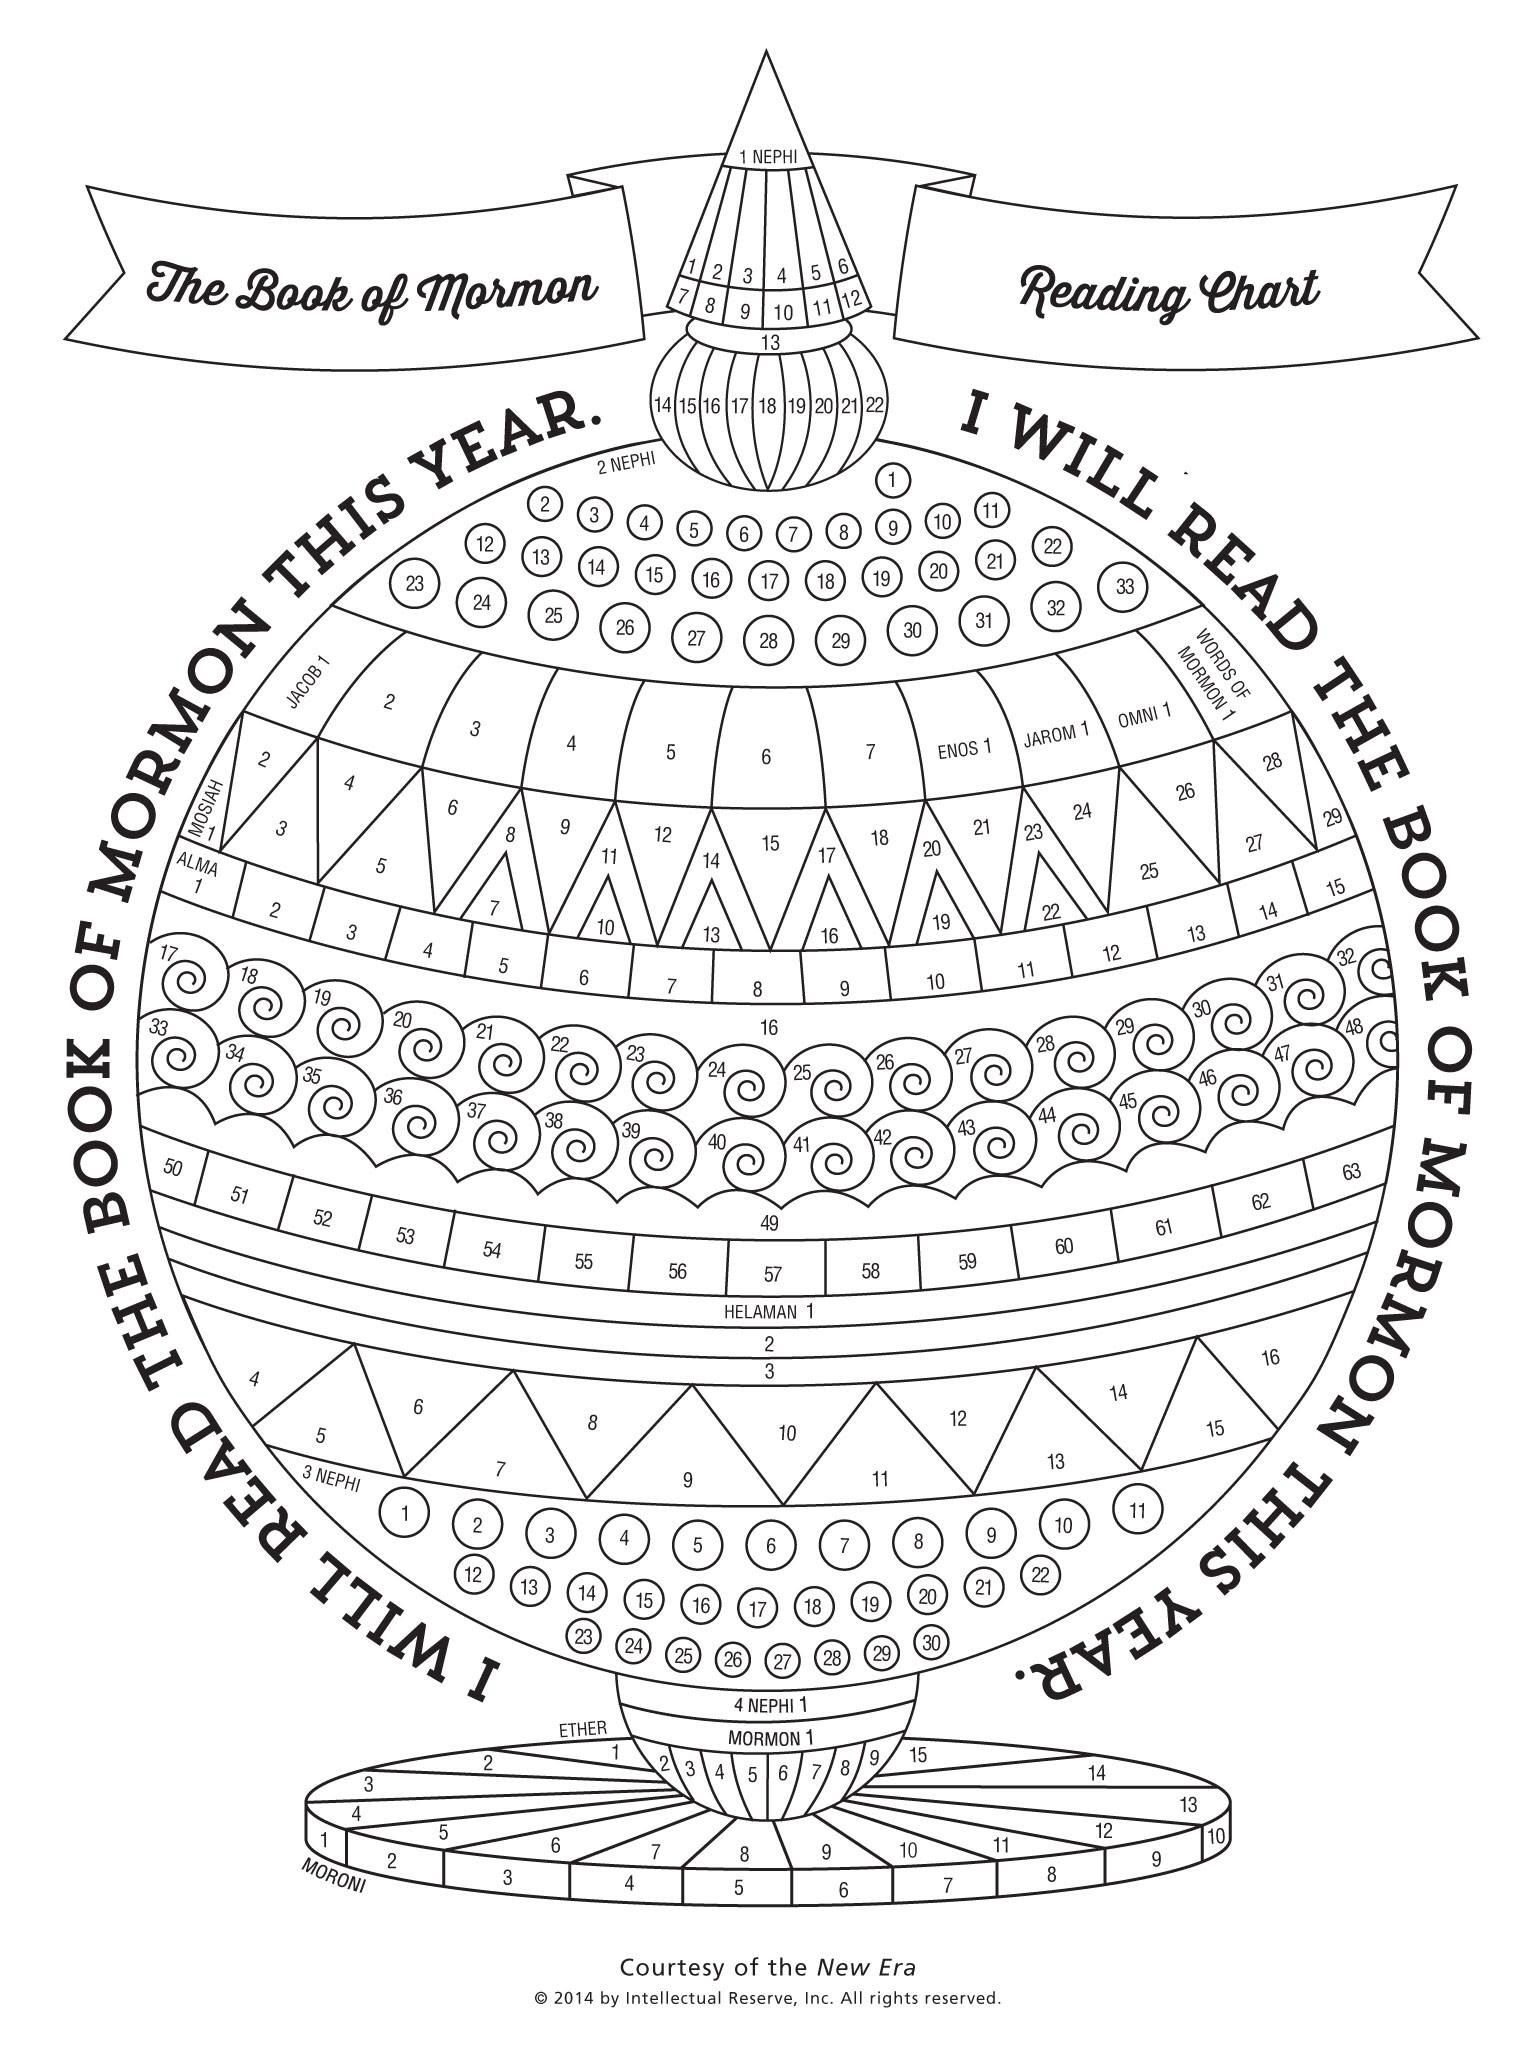 The Book of Mormon Reading Chart, by New Era | Scriptures ...